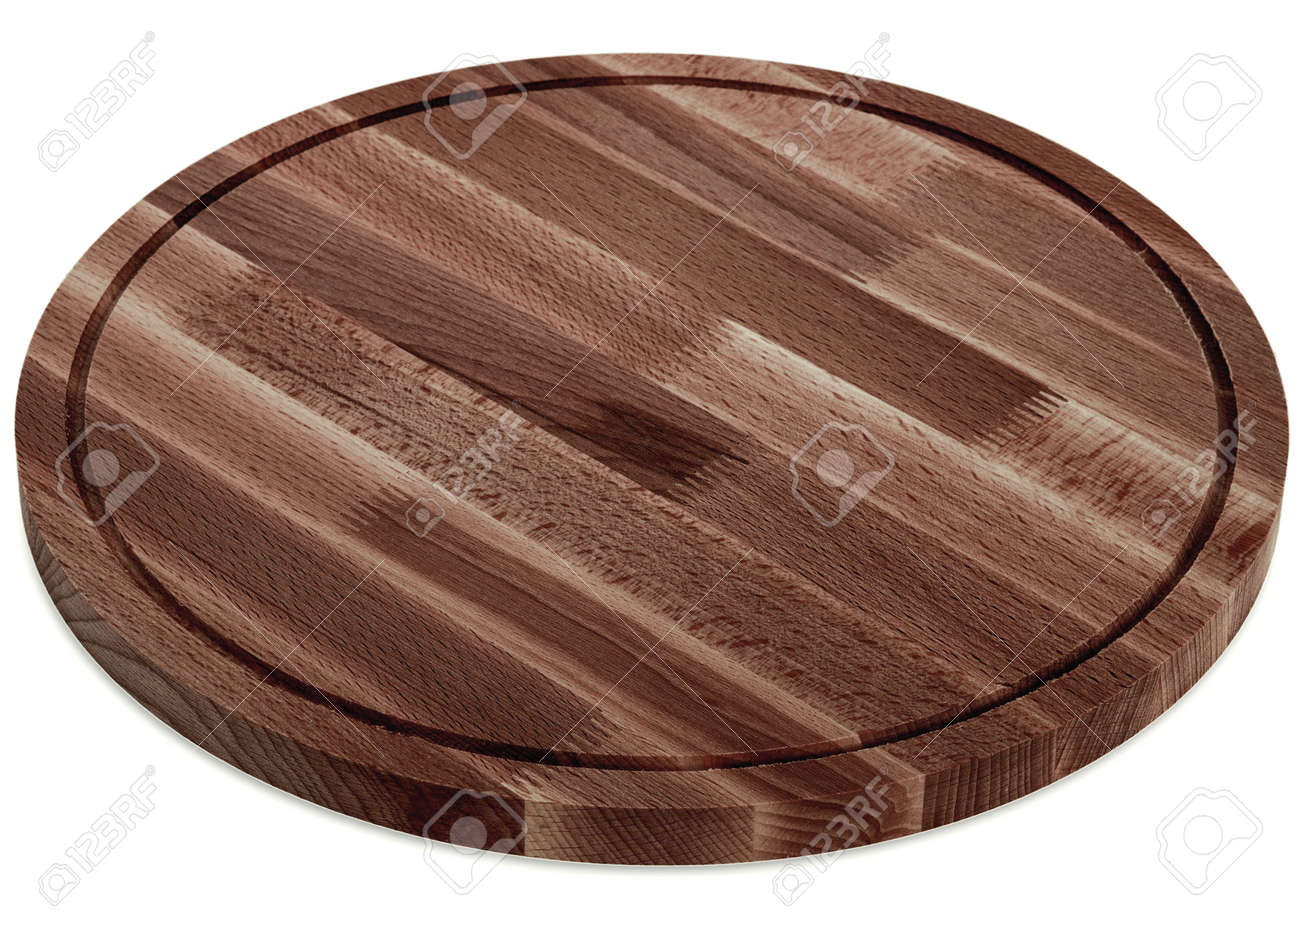 Wooden Round Cutting Board Handmade Wood Cutting Board Stock Photo Picture And Royalty Free Image Image 96881710